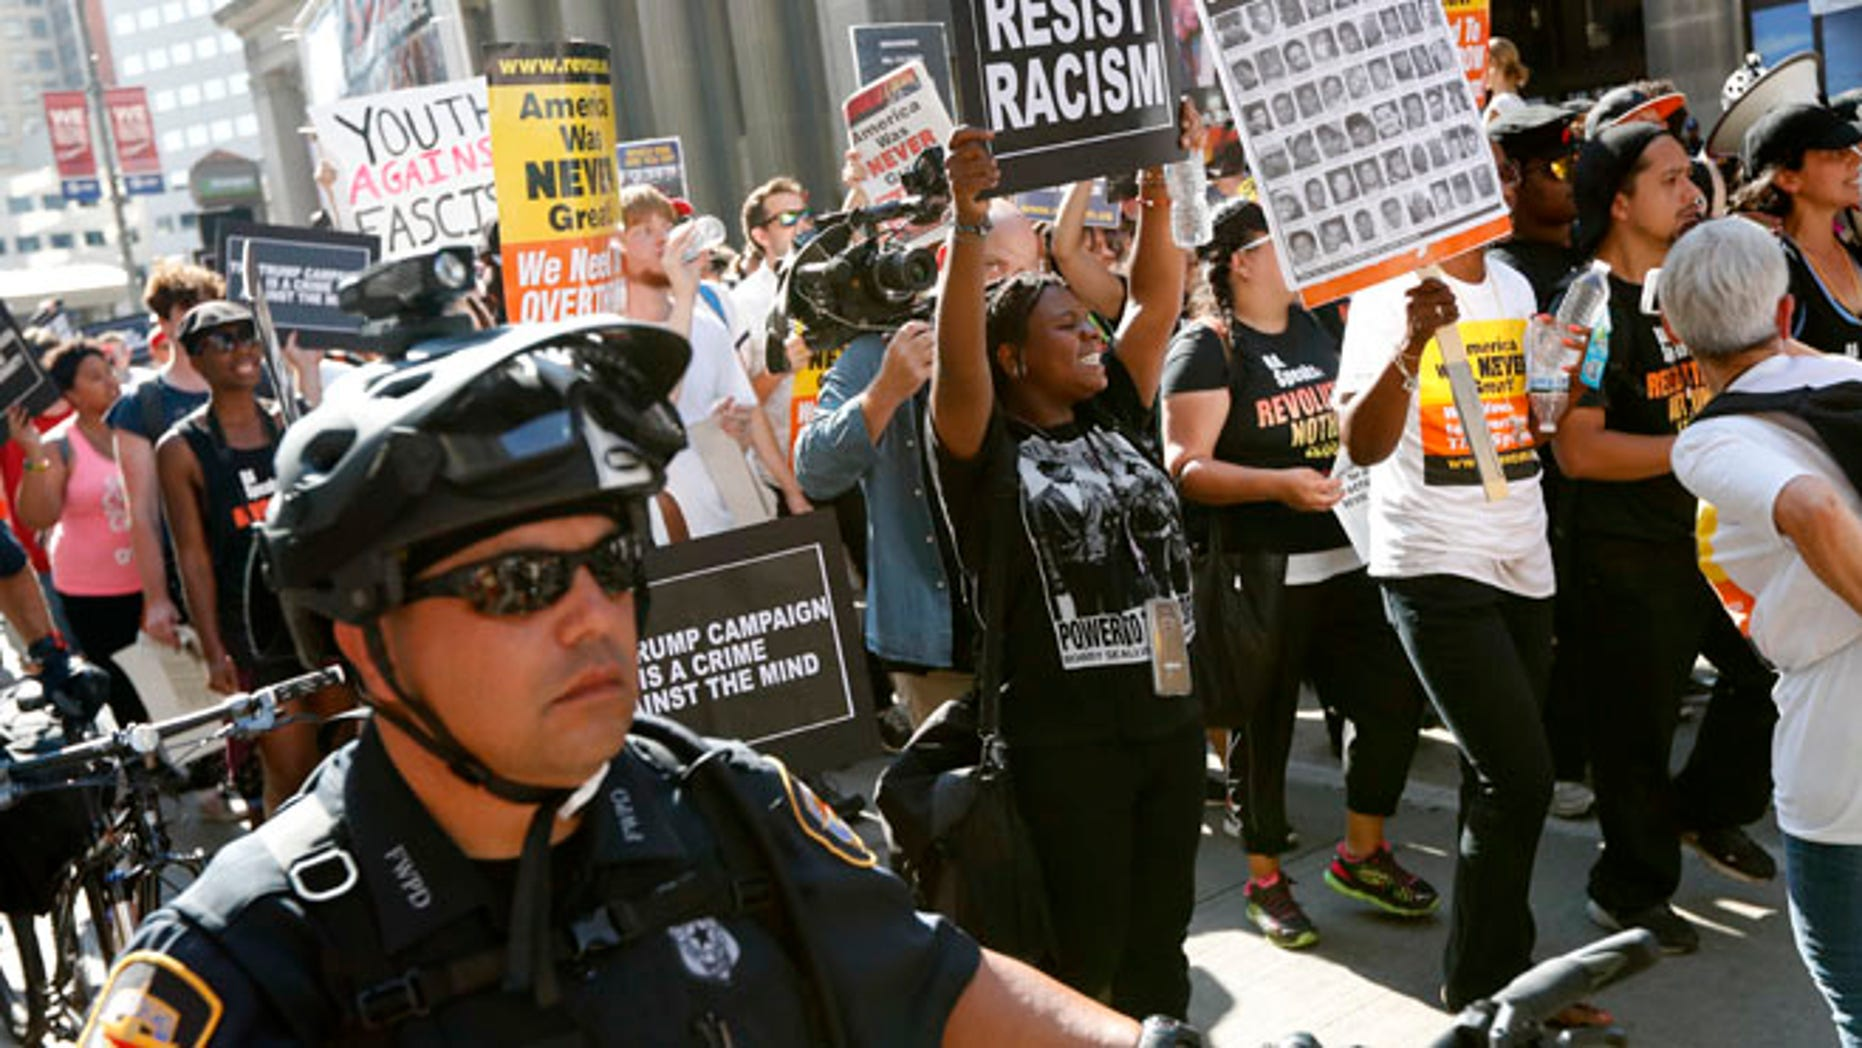 Protesters march in downtown Cleveland, on Tuesday, July 19, 2016, during the second day of the Republican convention. (AP Photo/John Minchillo)